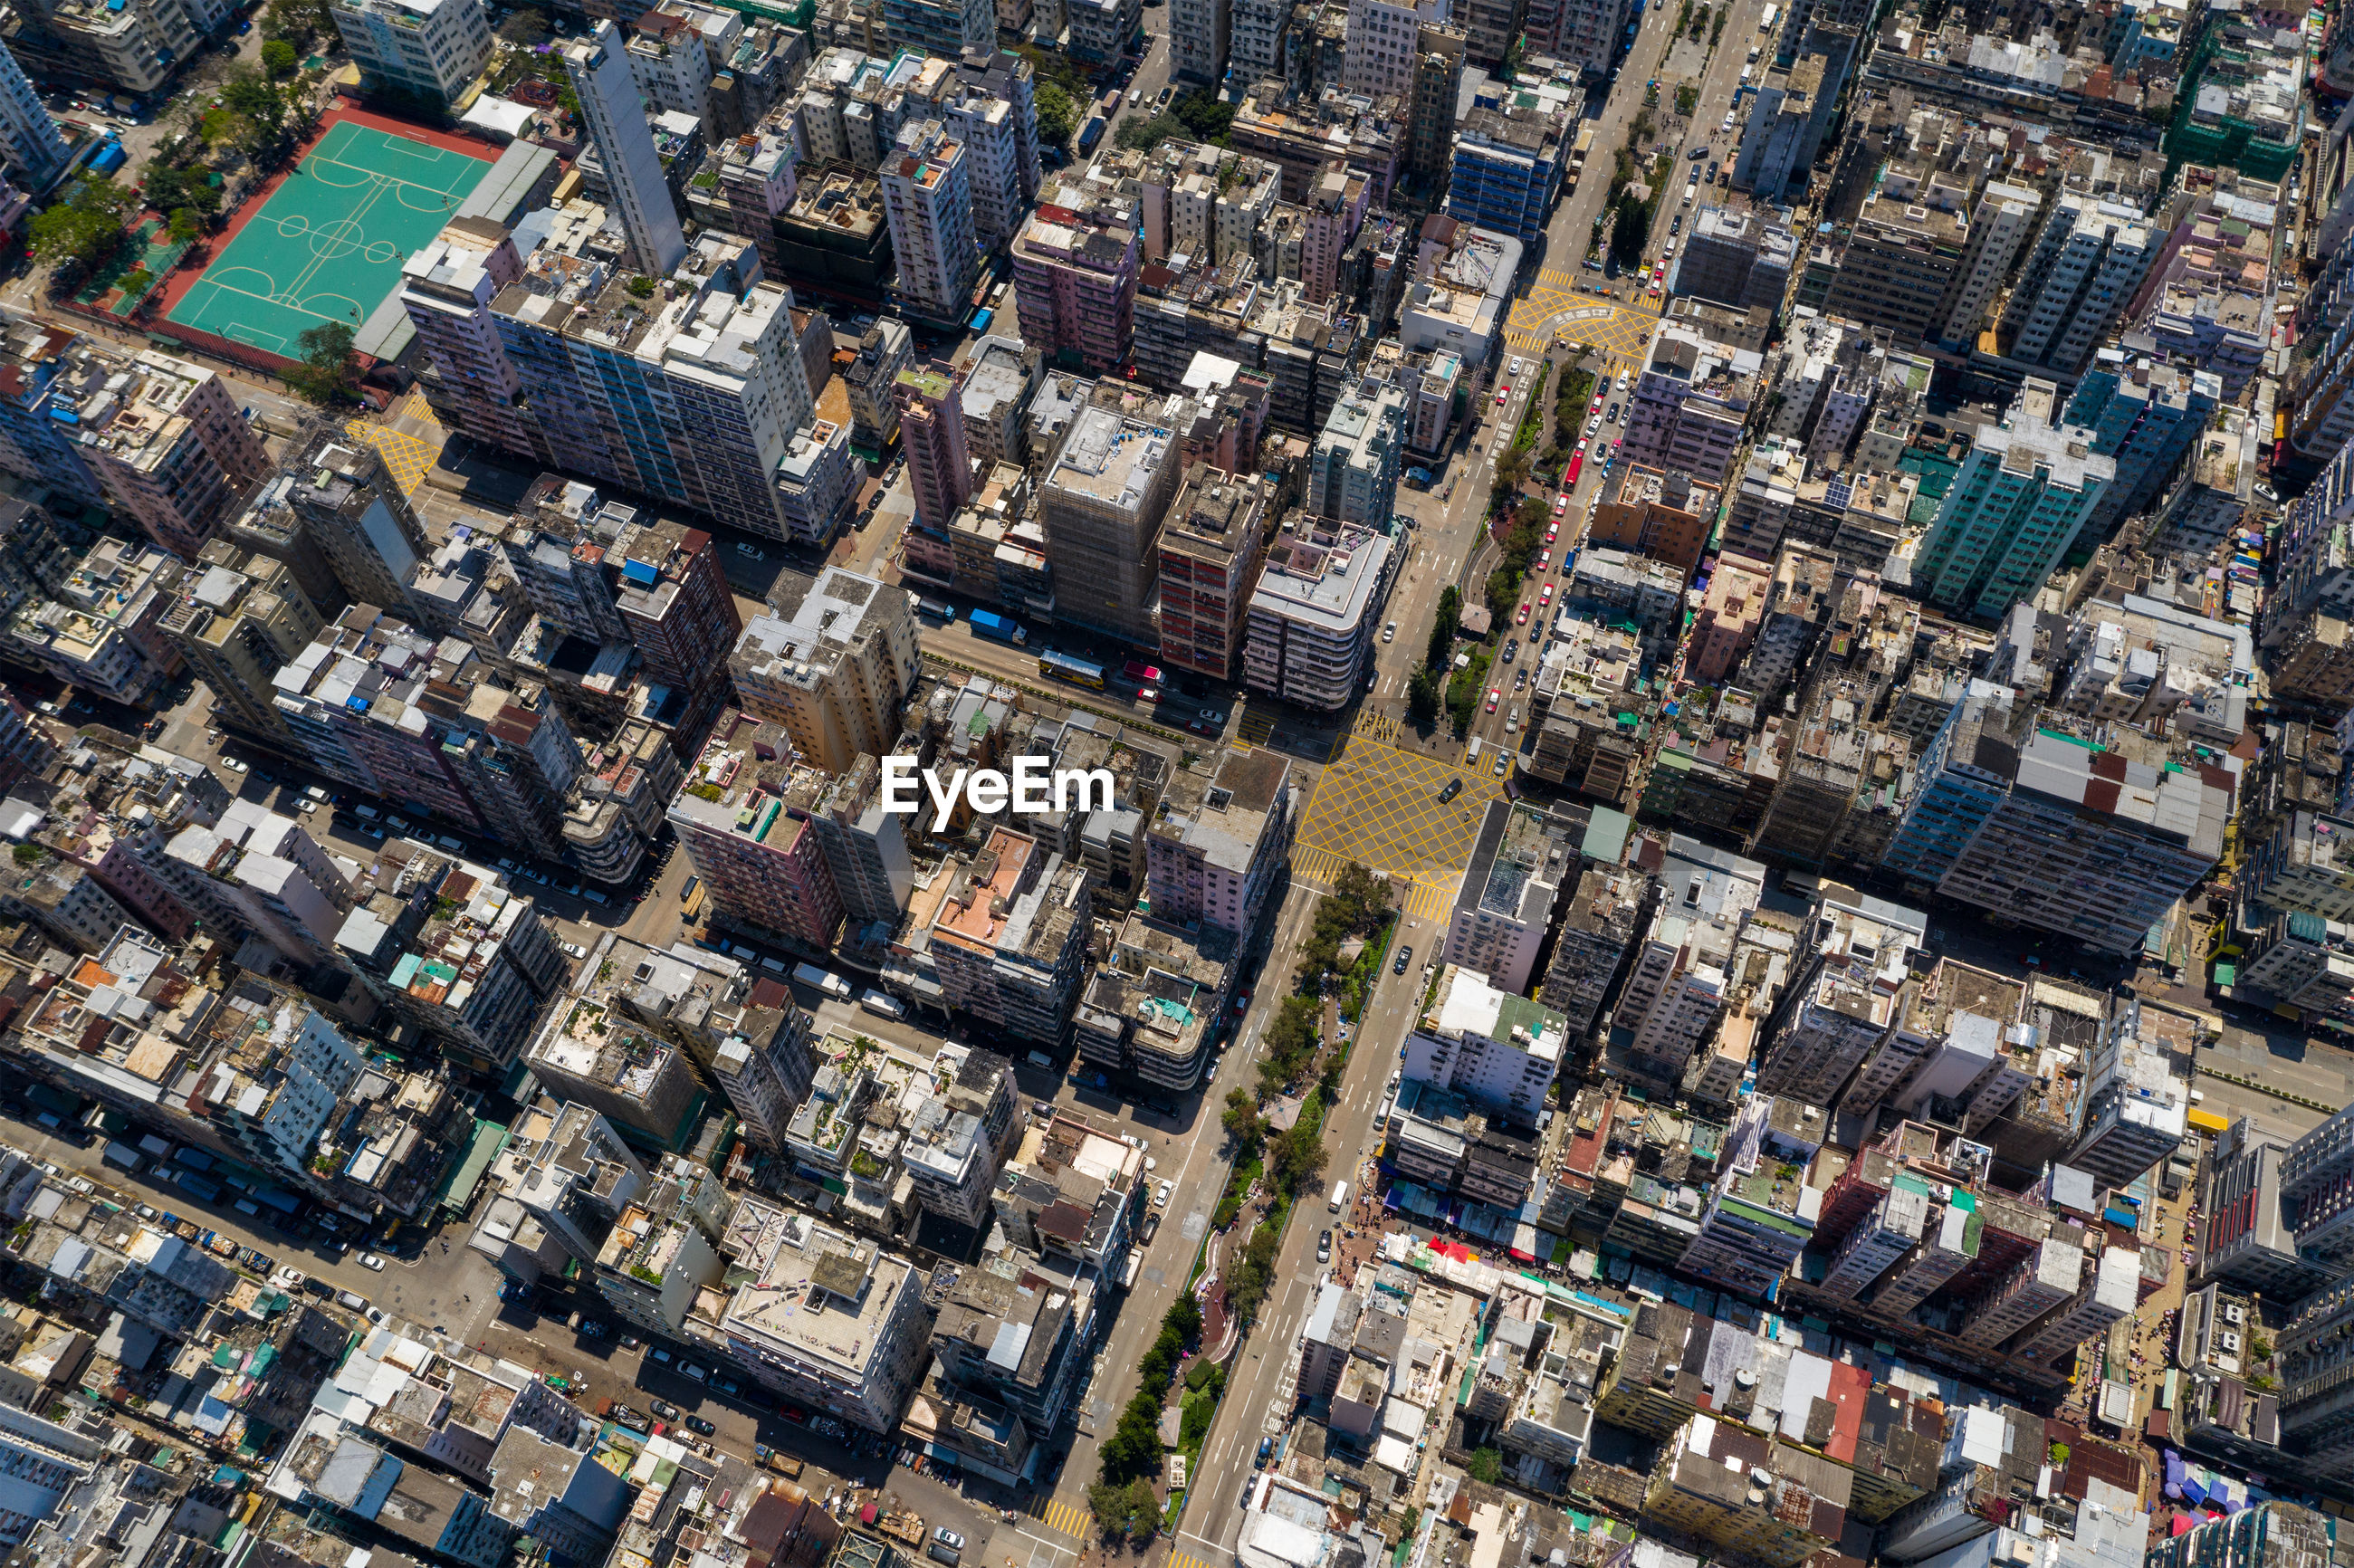 Aerial view of street amidst buildings in town